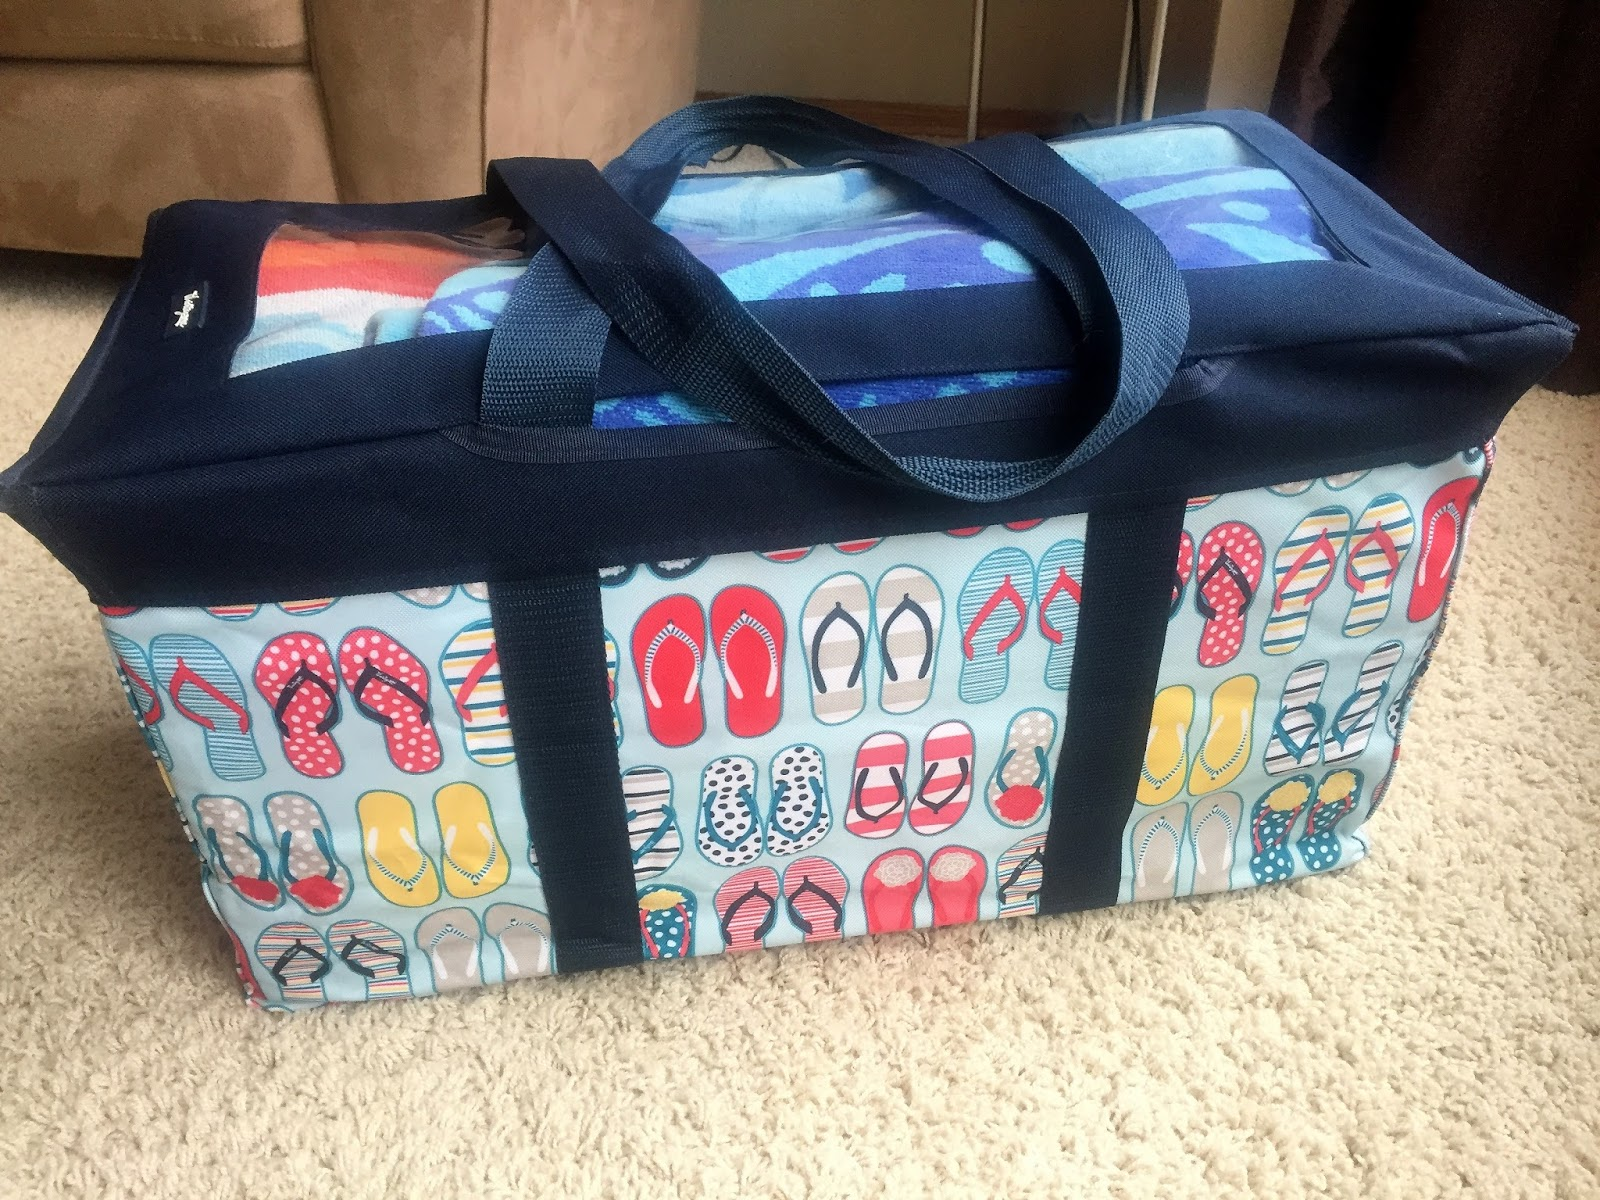 I Thought D Share A Few Tips Relied On To Make Family Road Trips Run Little Smoother Today M Talking About How Pack The Perfect Beach Bag